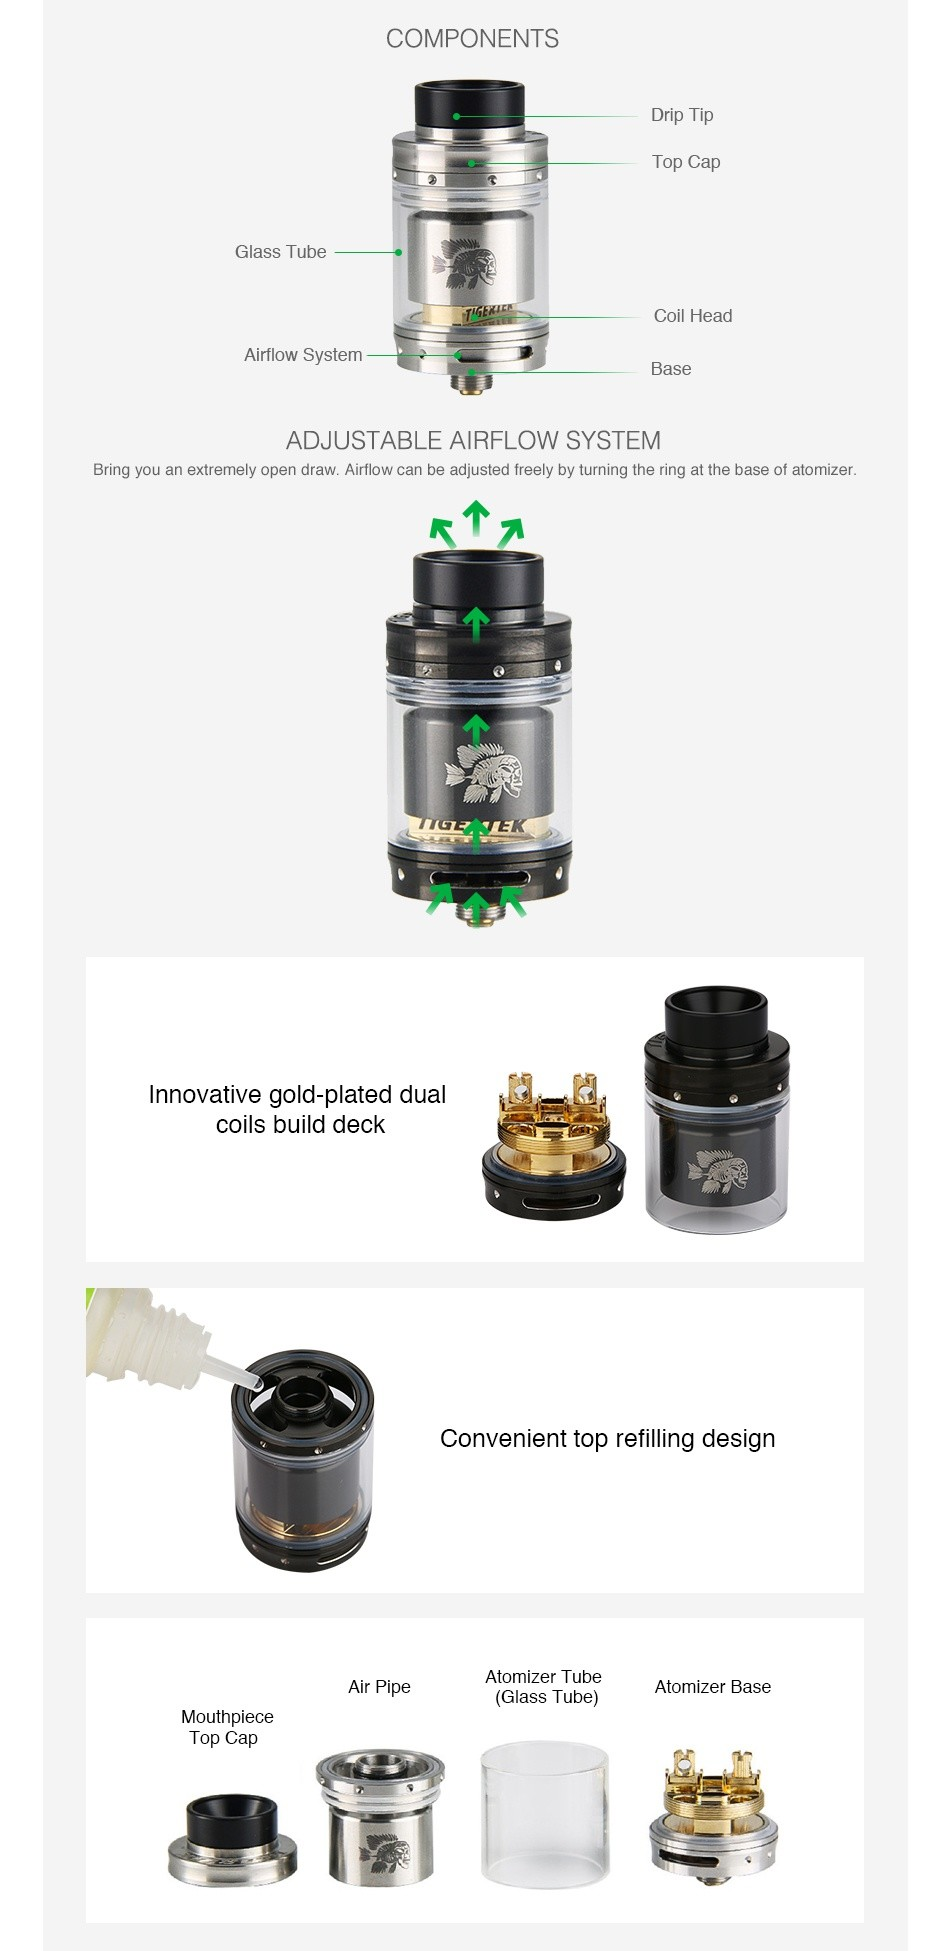 Tigertek Mermaid RTA 3.5ml COMPONENTS Top Ca Glass Tube Coil Head rflow System ADJUSTABLE AIRFLOW SYSTEM Bring you an extremely open draw  Airflow can be adjusted freely by turning the ring at the base of atomizer RZ  E nnovative gold plated dual coils build deck Convenient top refilling design Atomizer tube  Glass Tub Mouthpiece Top Cap